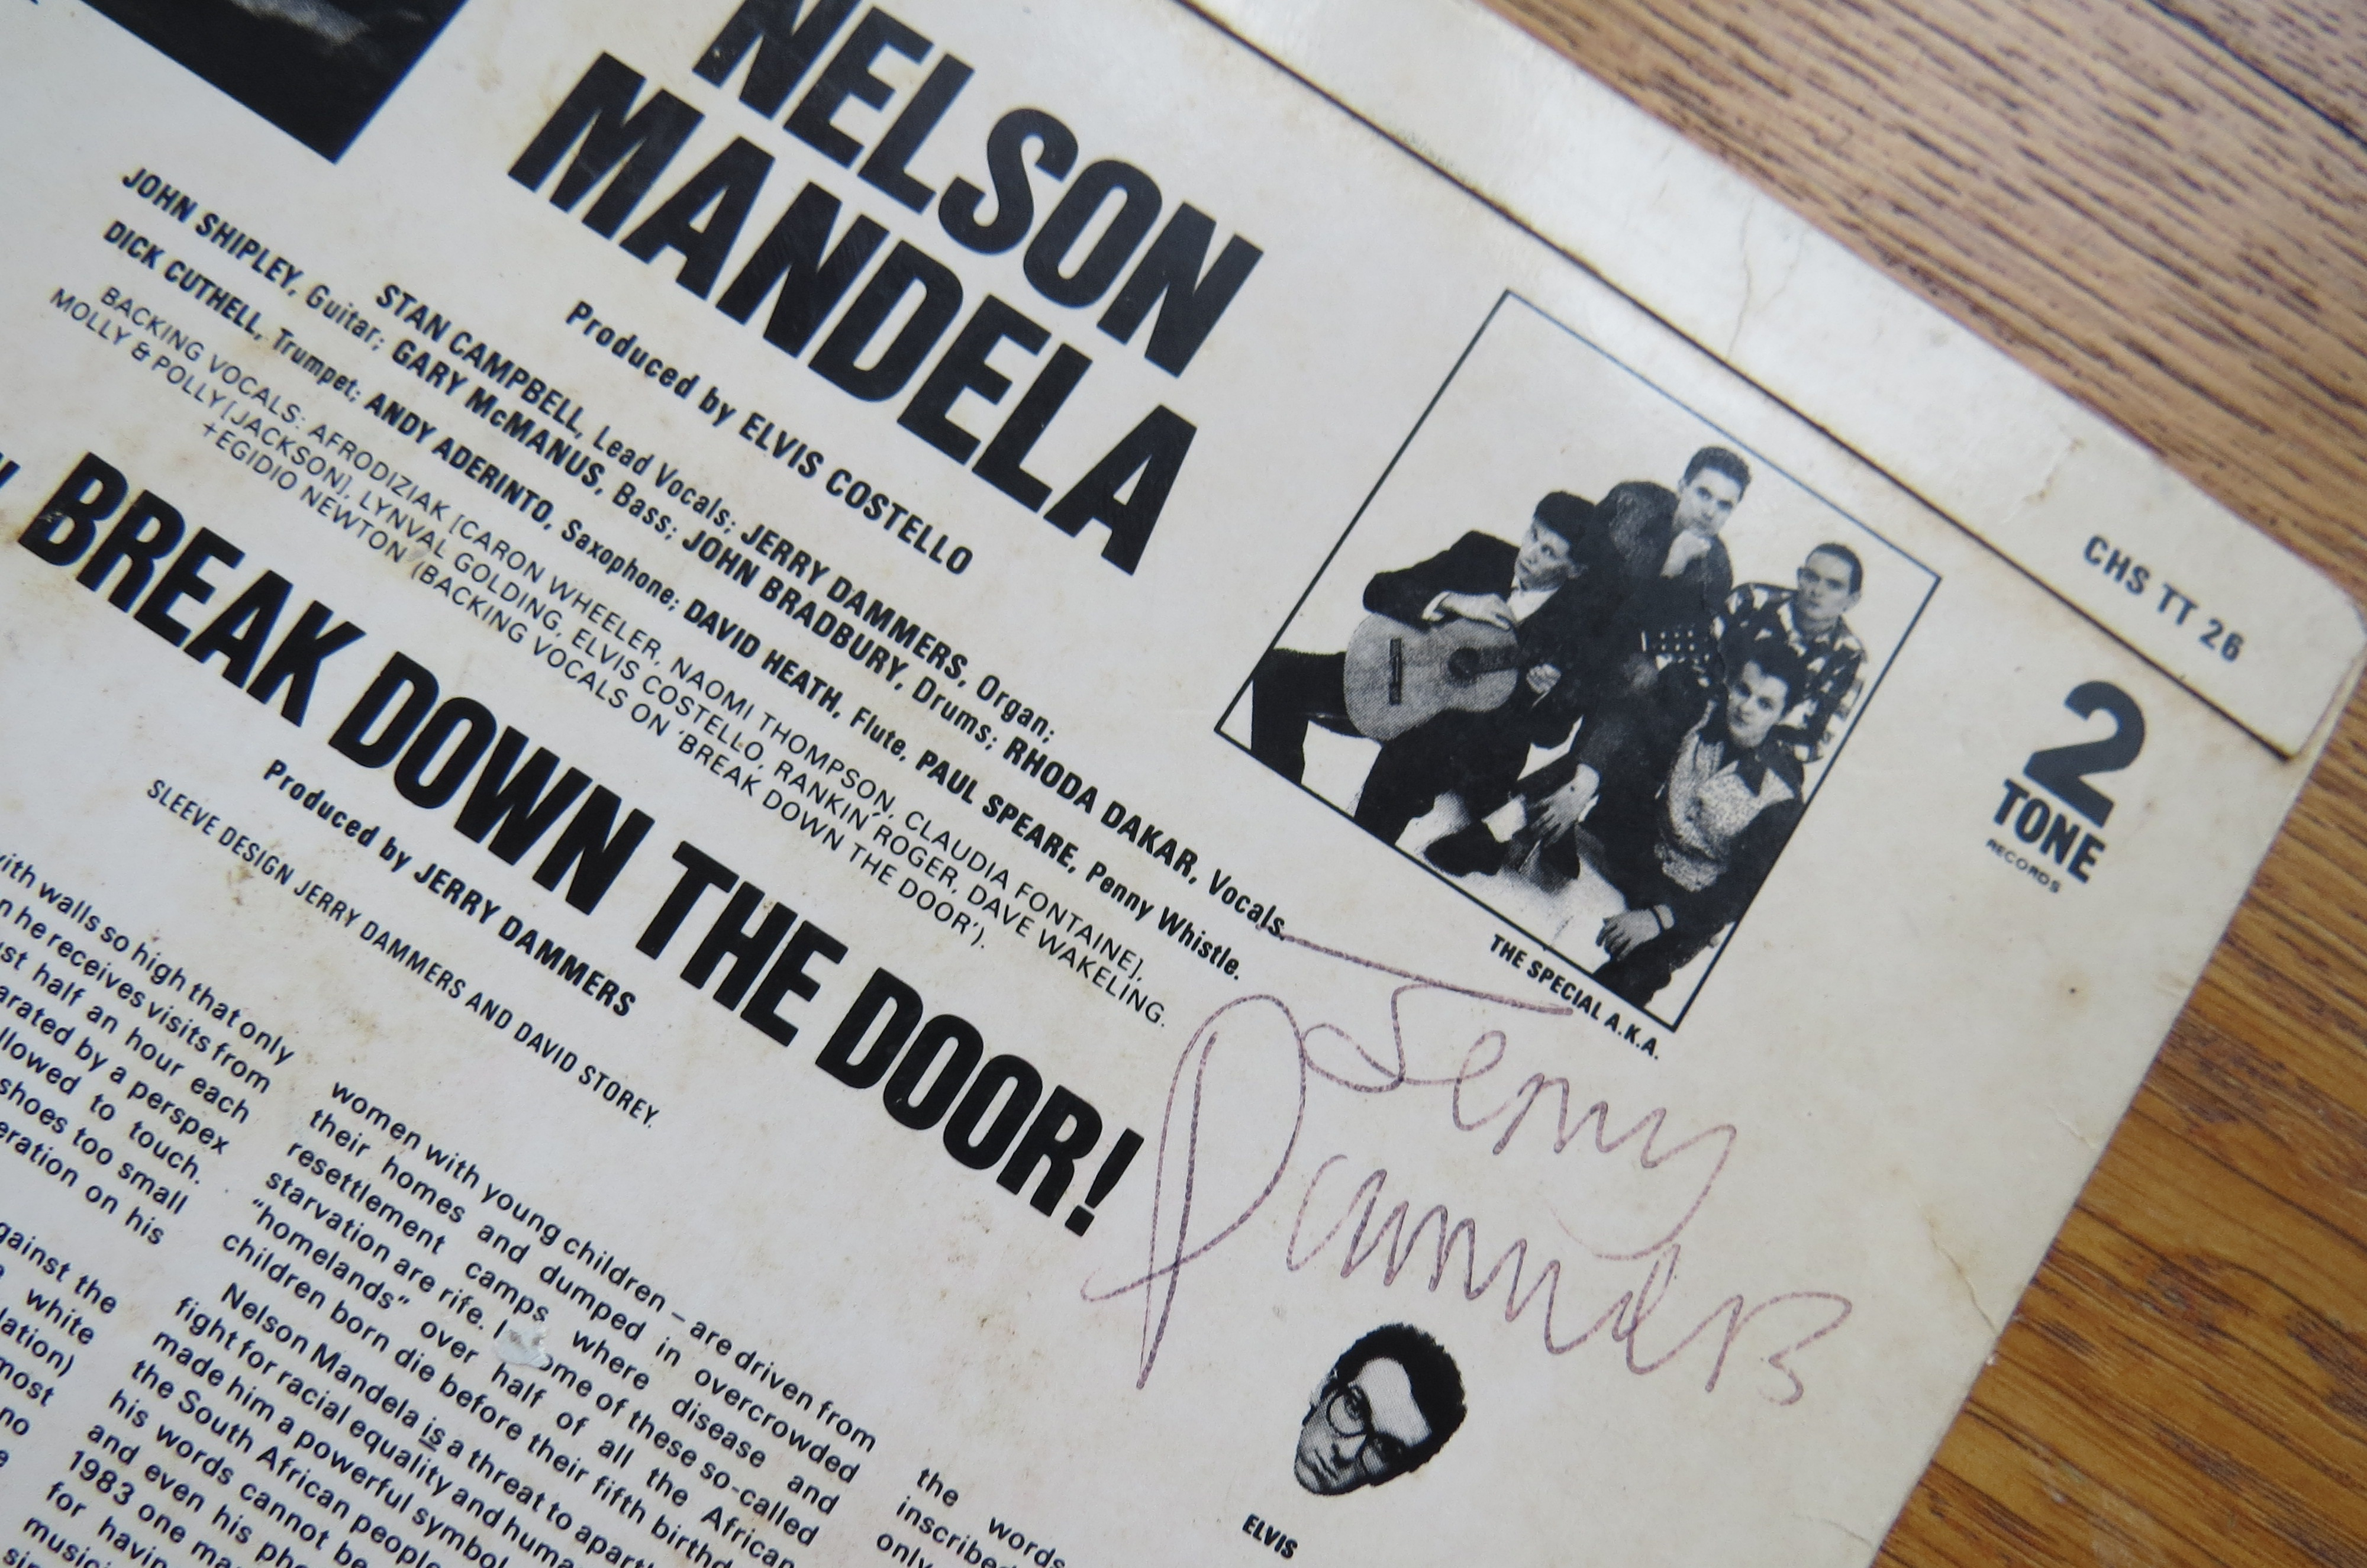 Close-up of Jerry Dammers's autograph!